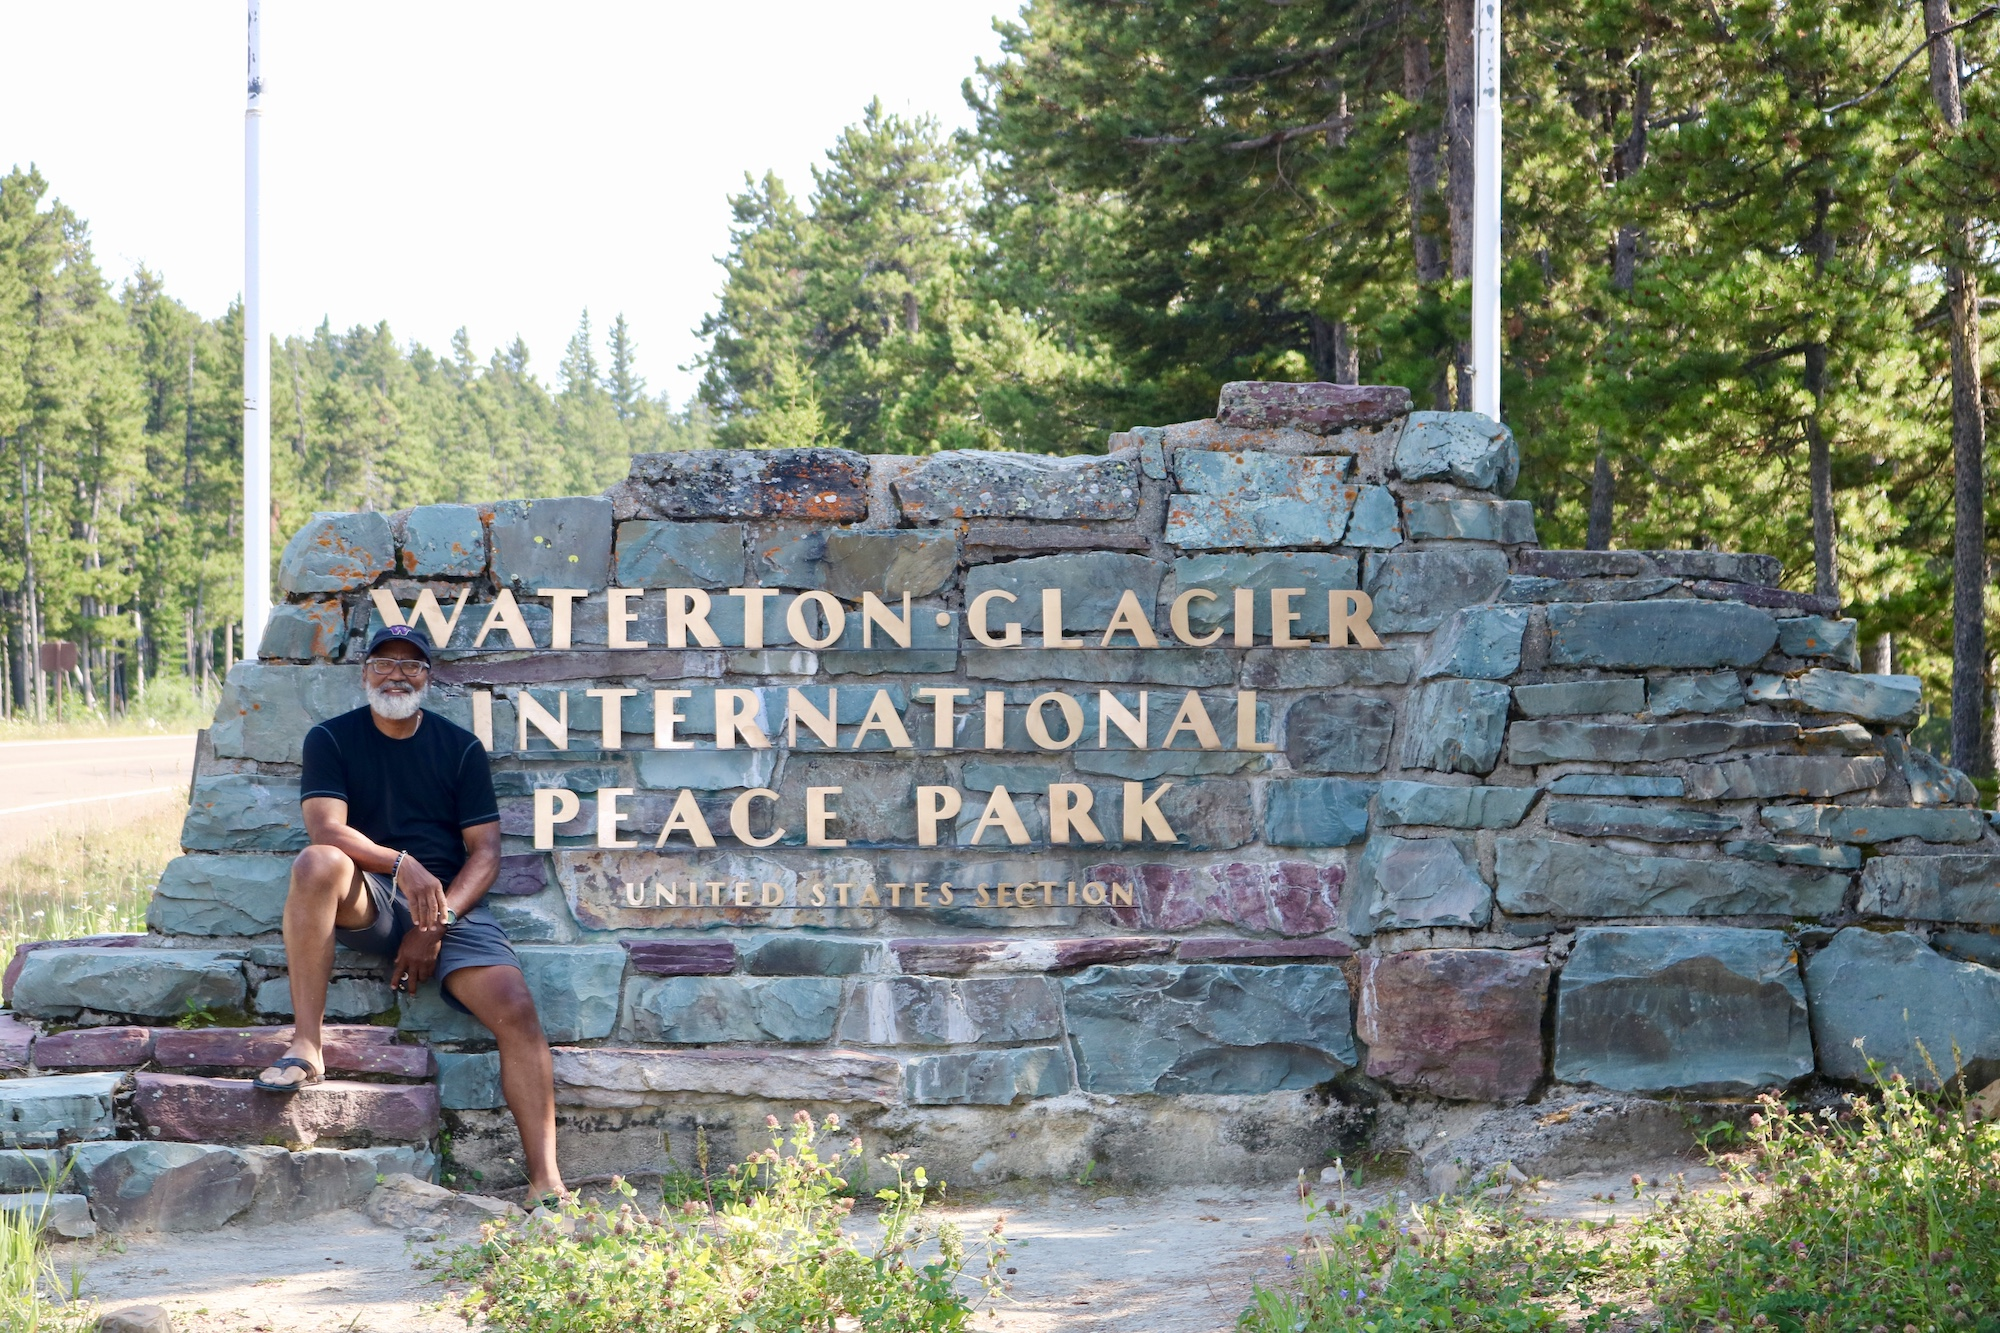 Carter McBride at the entrance sign to Waterton Glacier International Peace Park